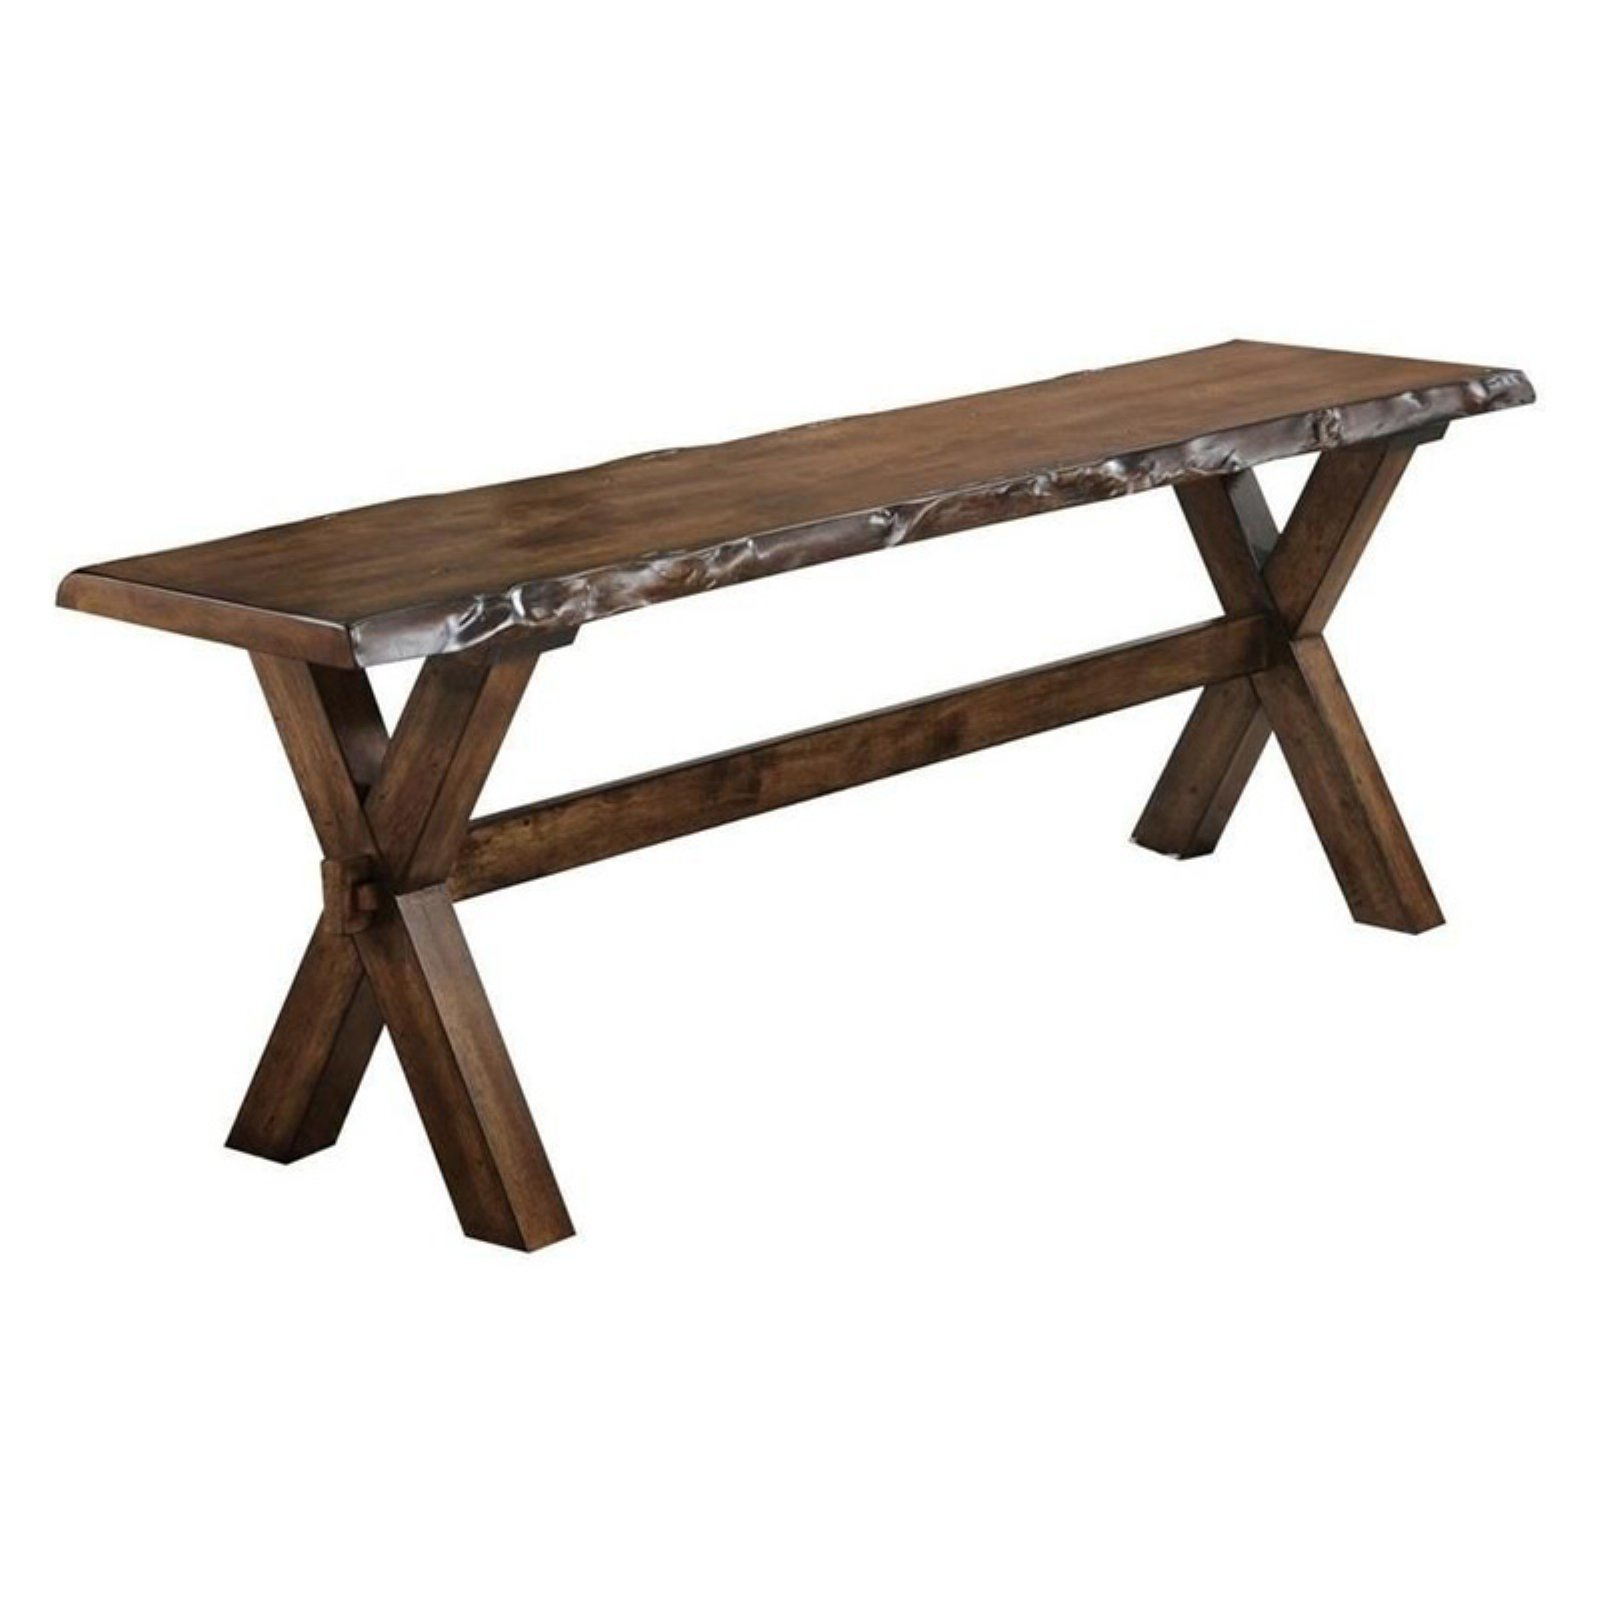 ACME Tratha Rectangular Trestle Bench in Antique Oak